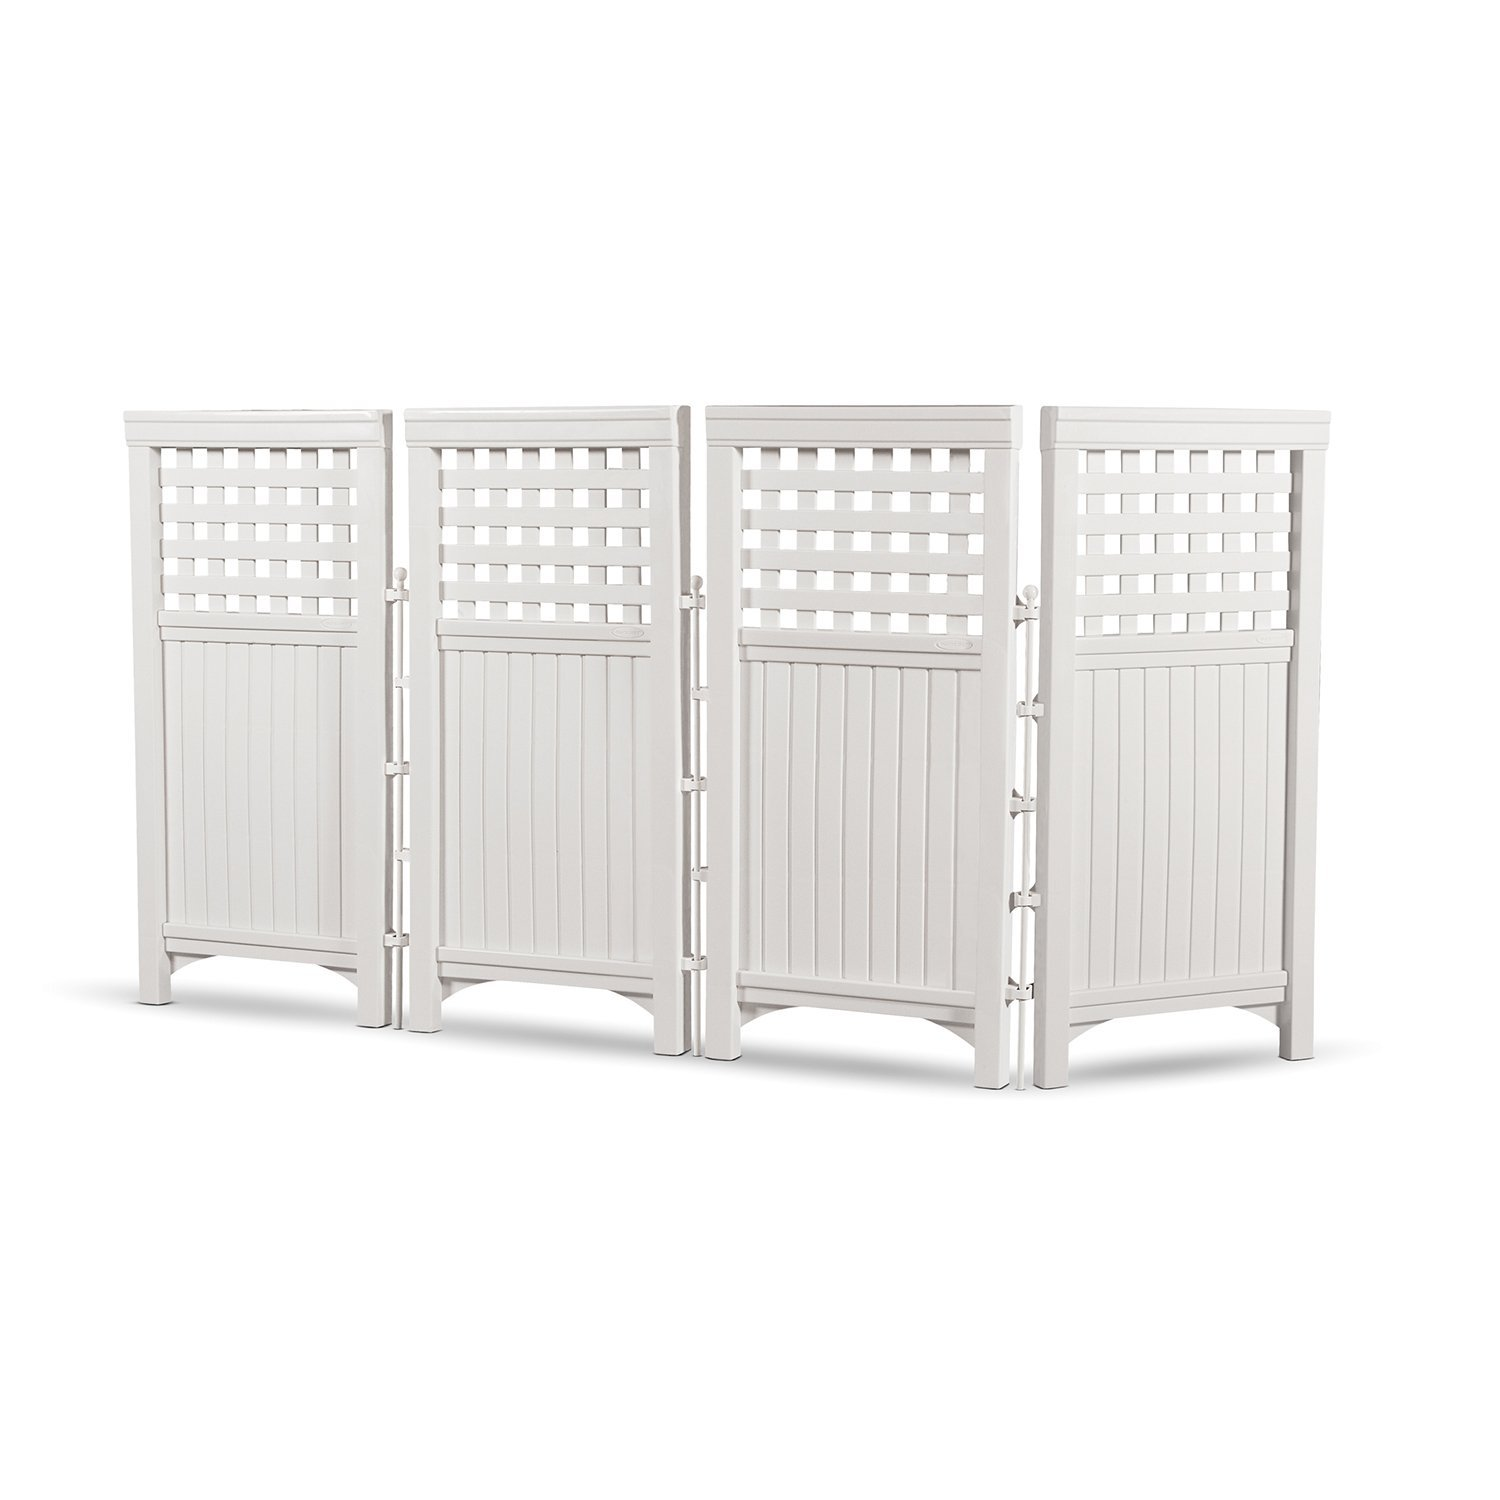 Suncast 4 Panel Outdoor Screen Enclosure - Freestanding Steel Resin Reversible Panel Outdoor Screen - Perfect for Concealing Garbage Cans, Air Conditioners - White - 44 Inches In Height